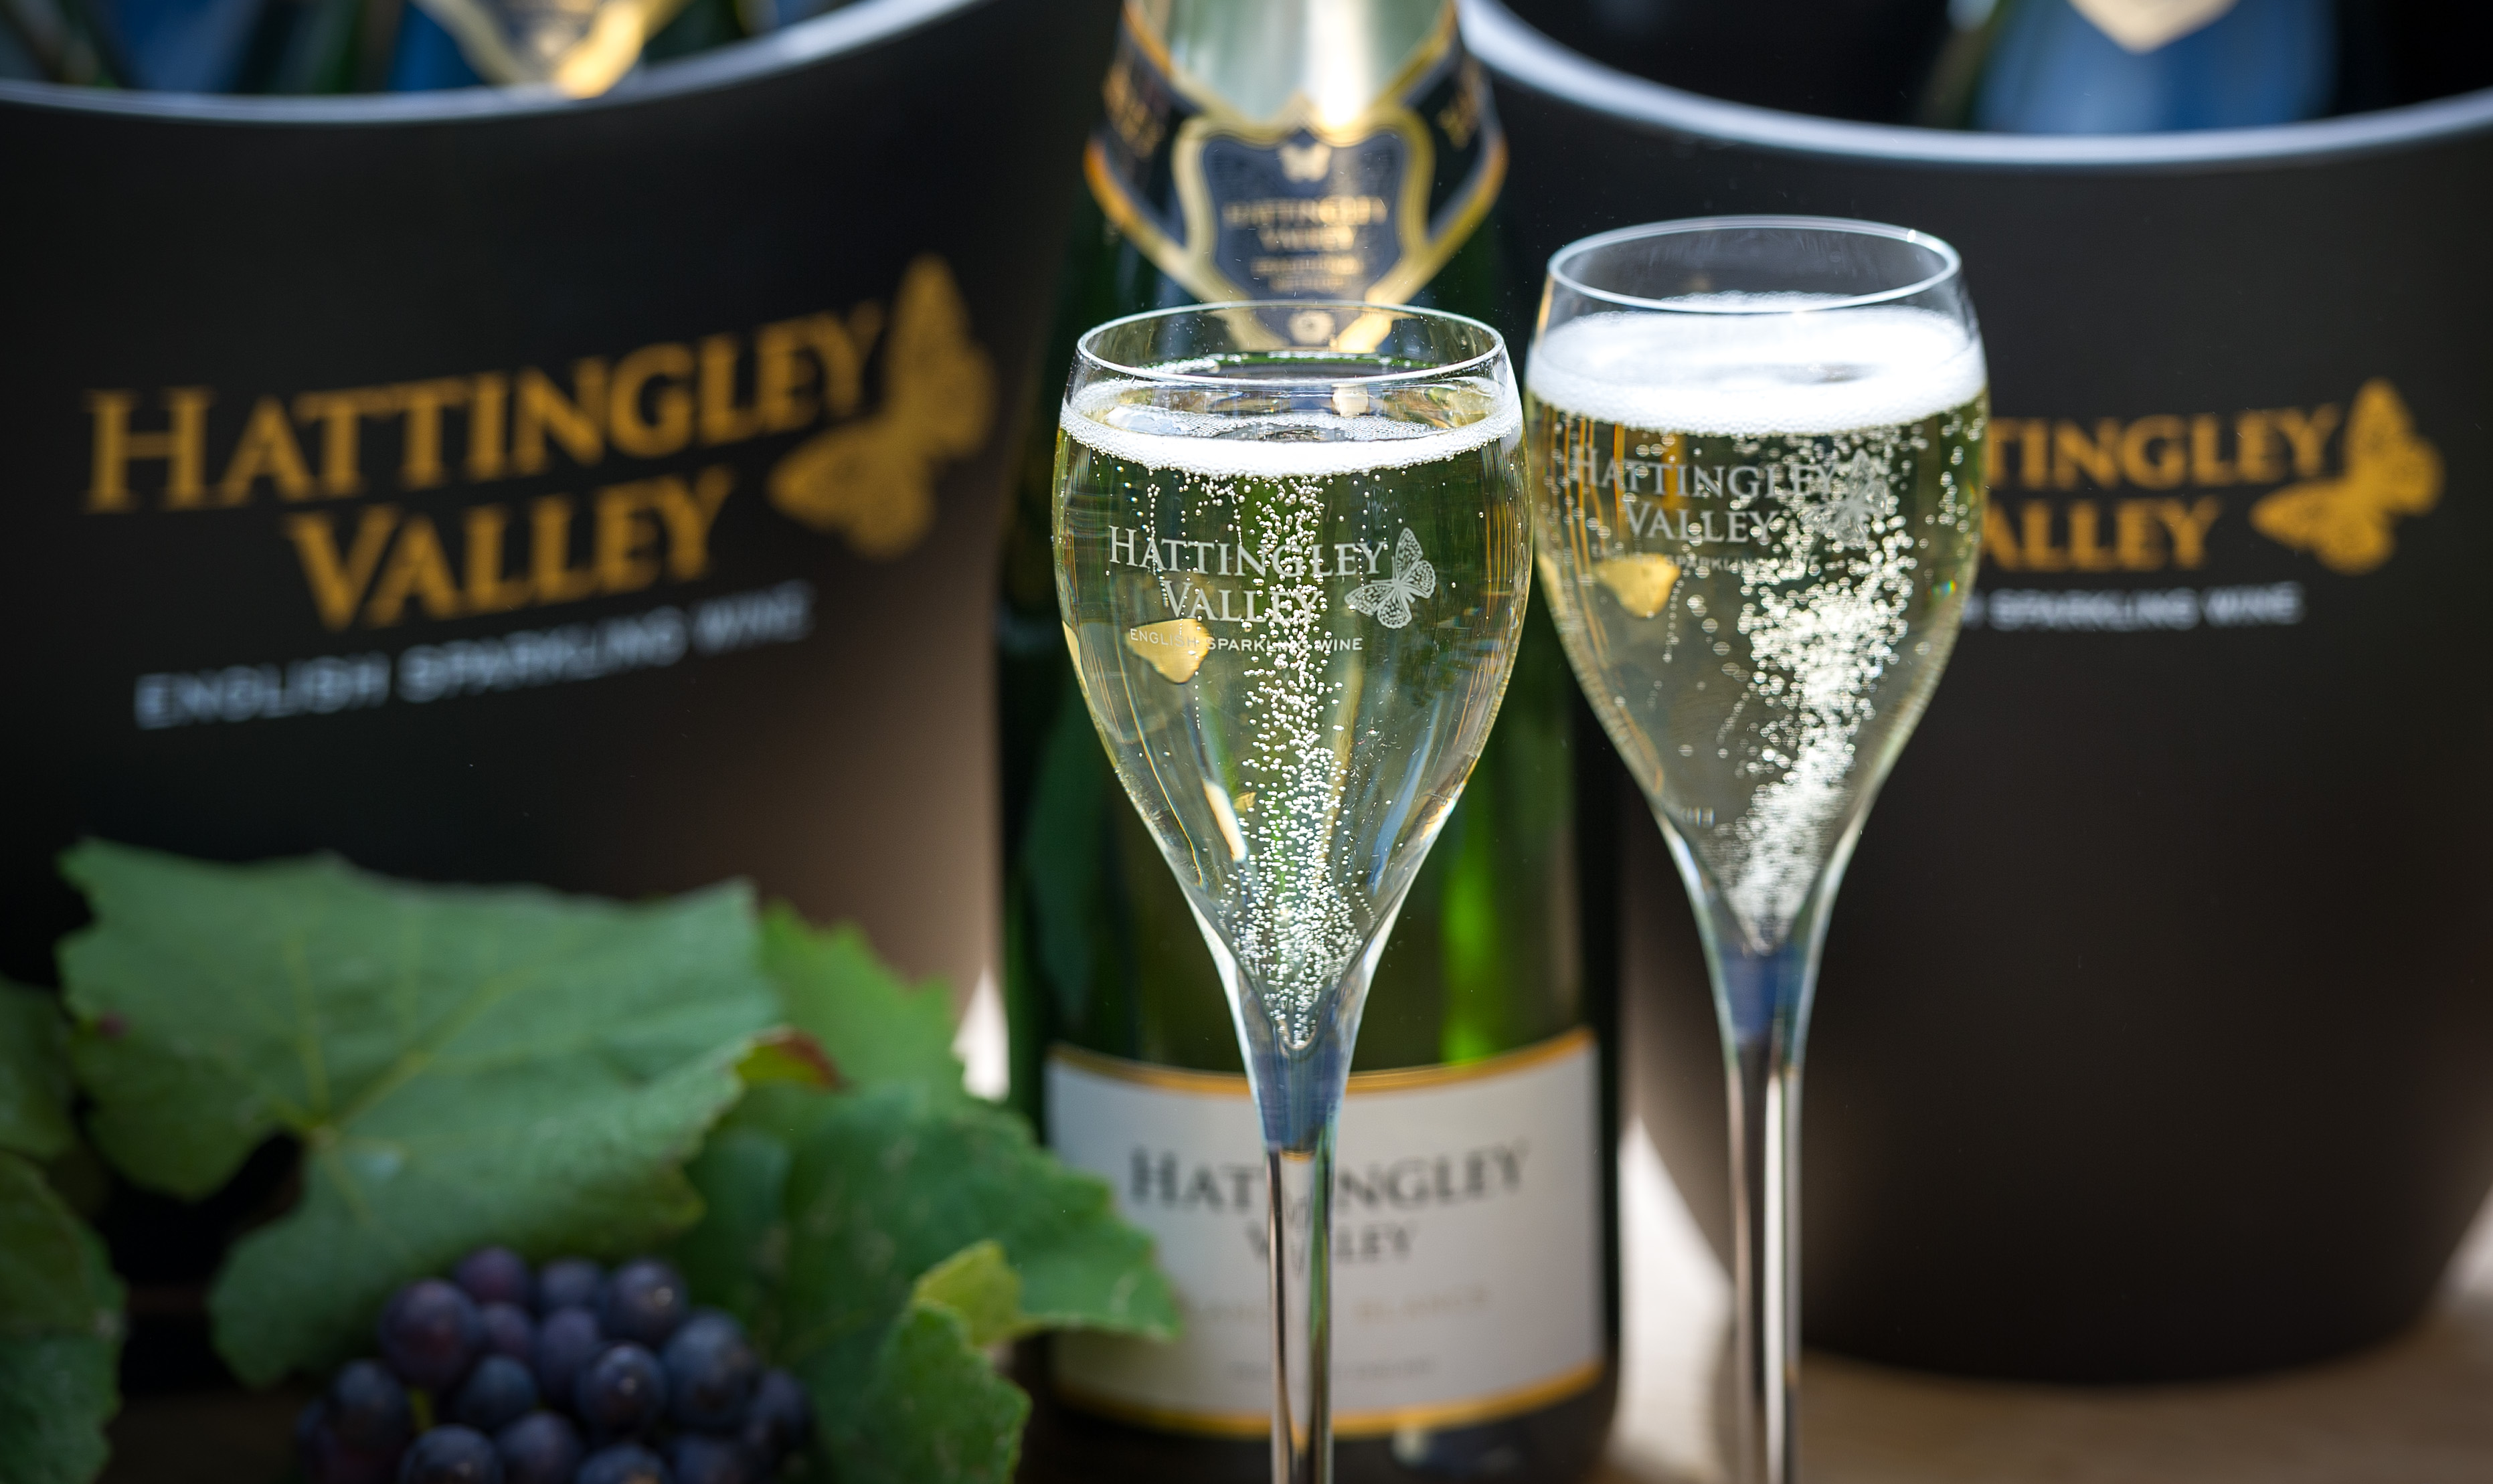 Hattingley Valley return to Members Area with English Sparkling Wine Bar